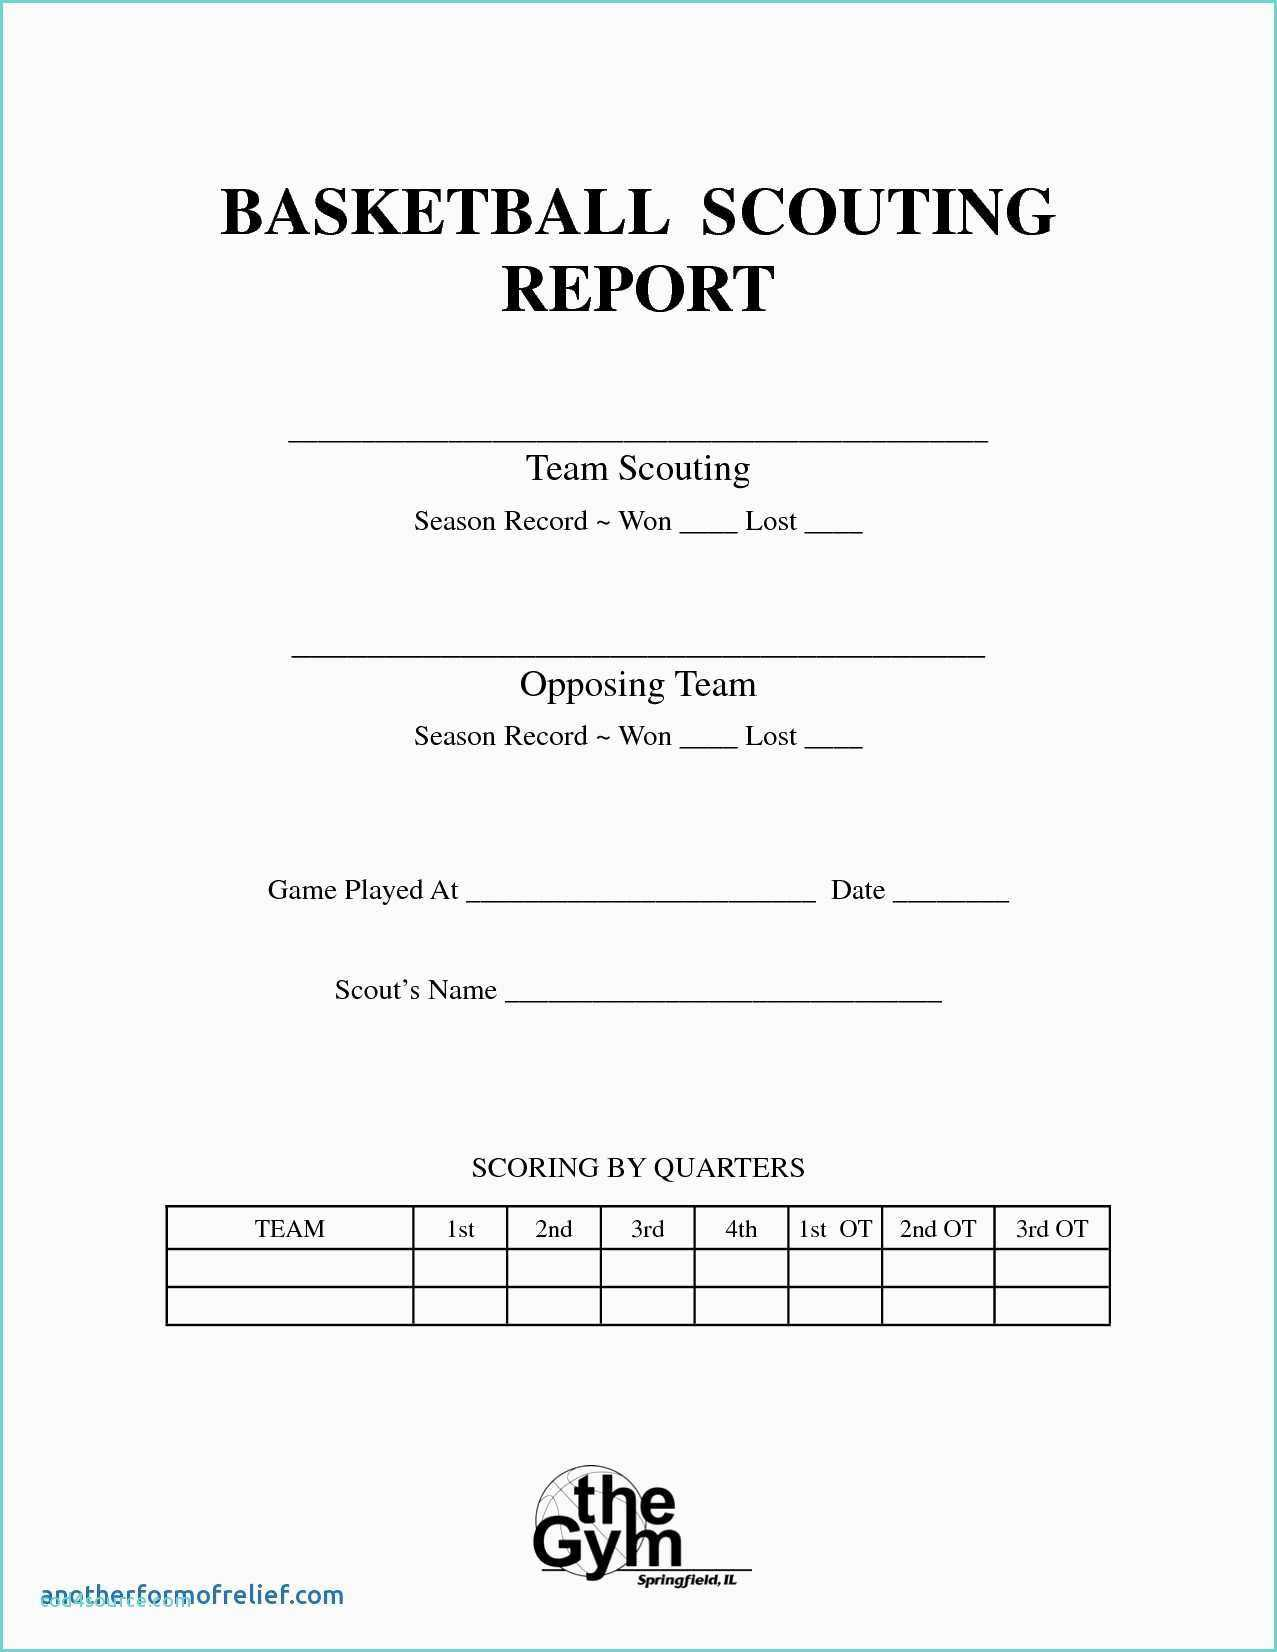 Bowling Spreadsheet And Basketball Scouting Report Template Within Scouting Report Template Basketball